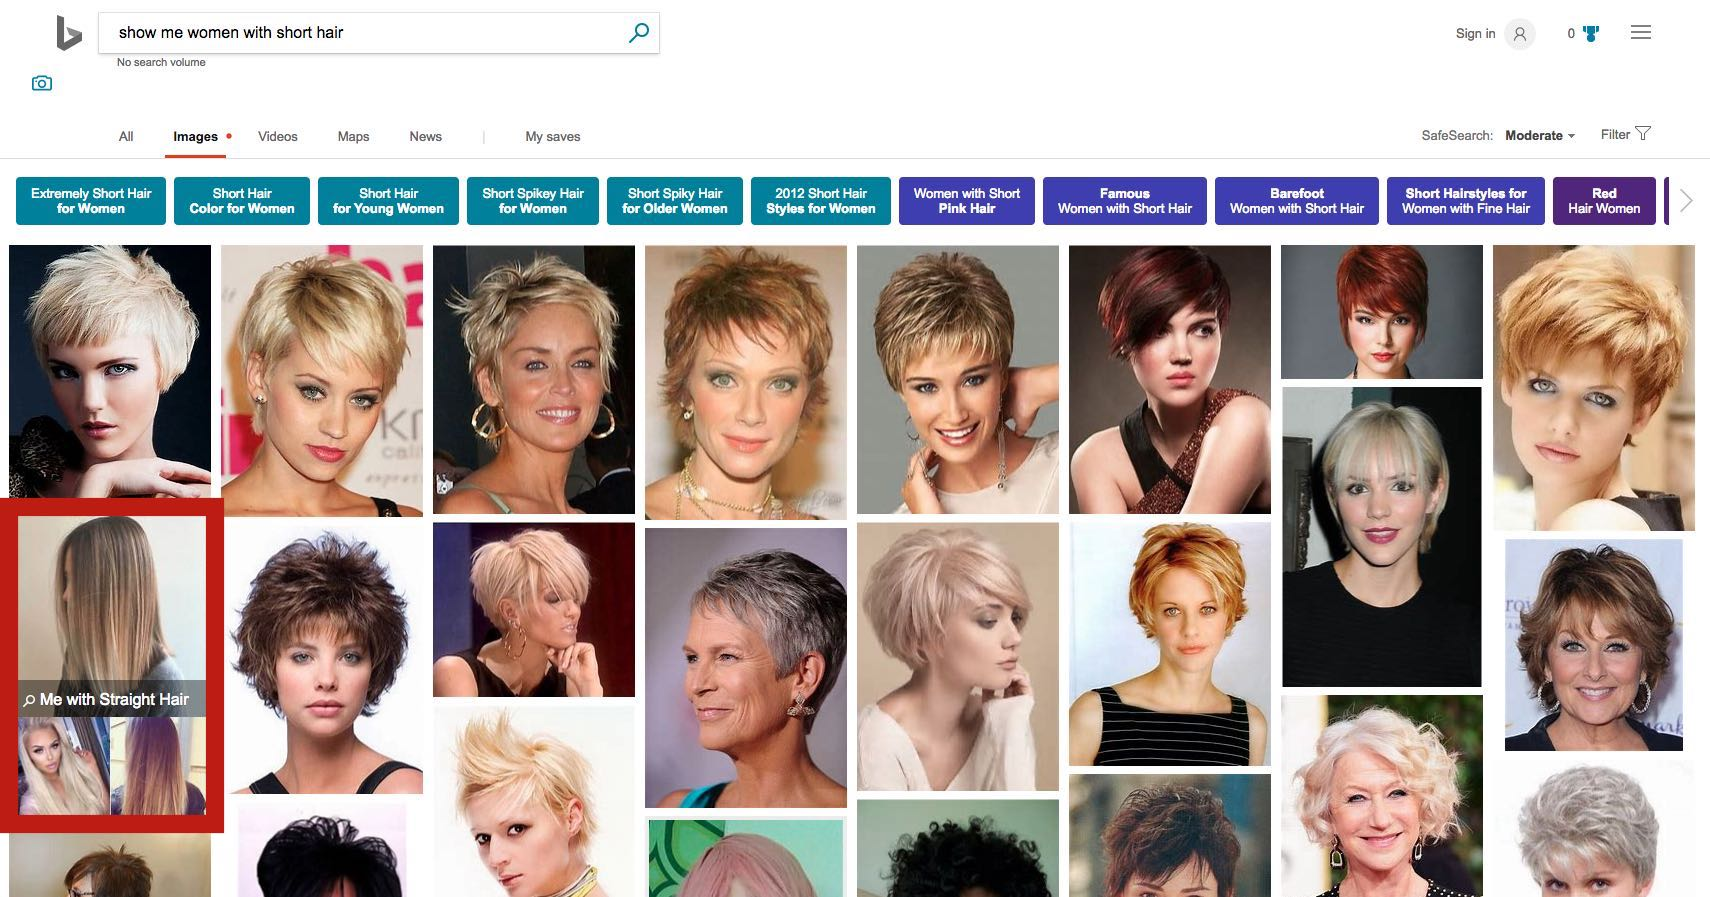 Bing images with short hair